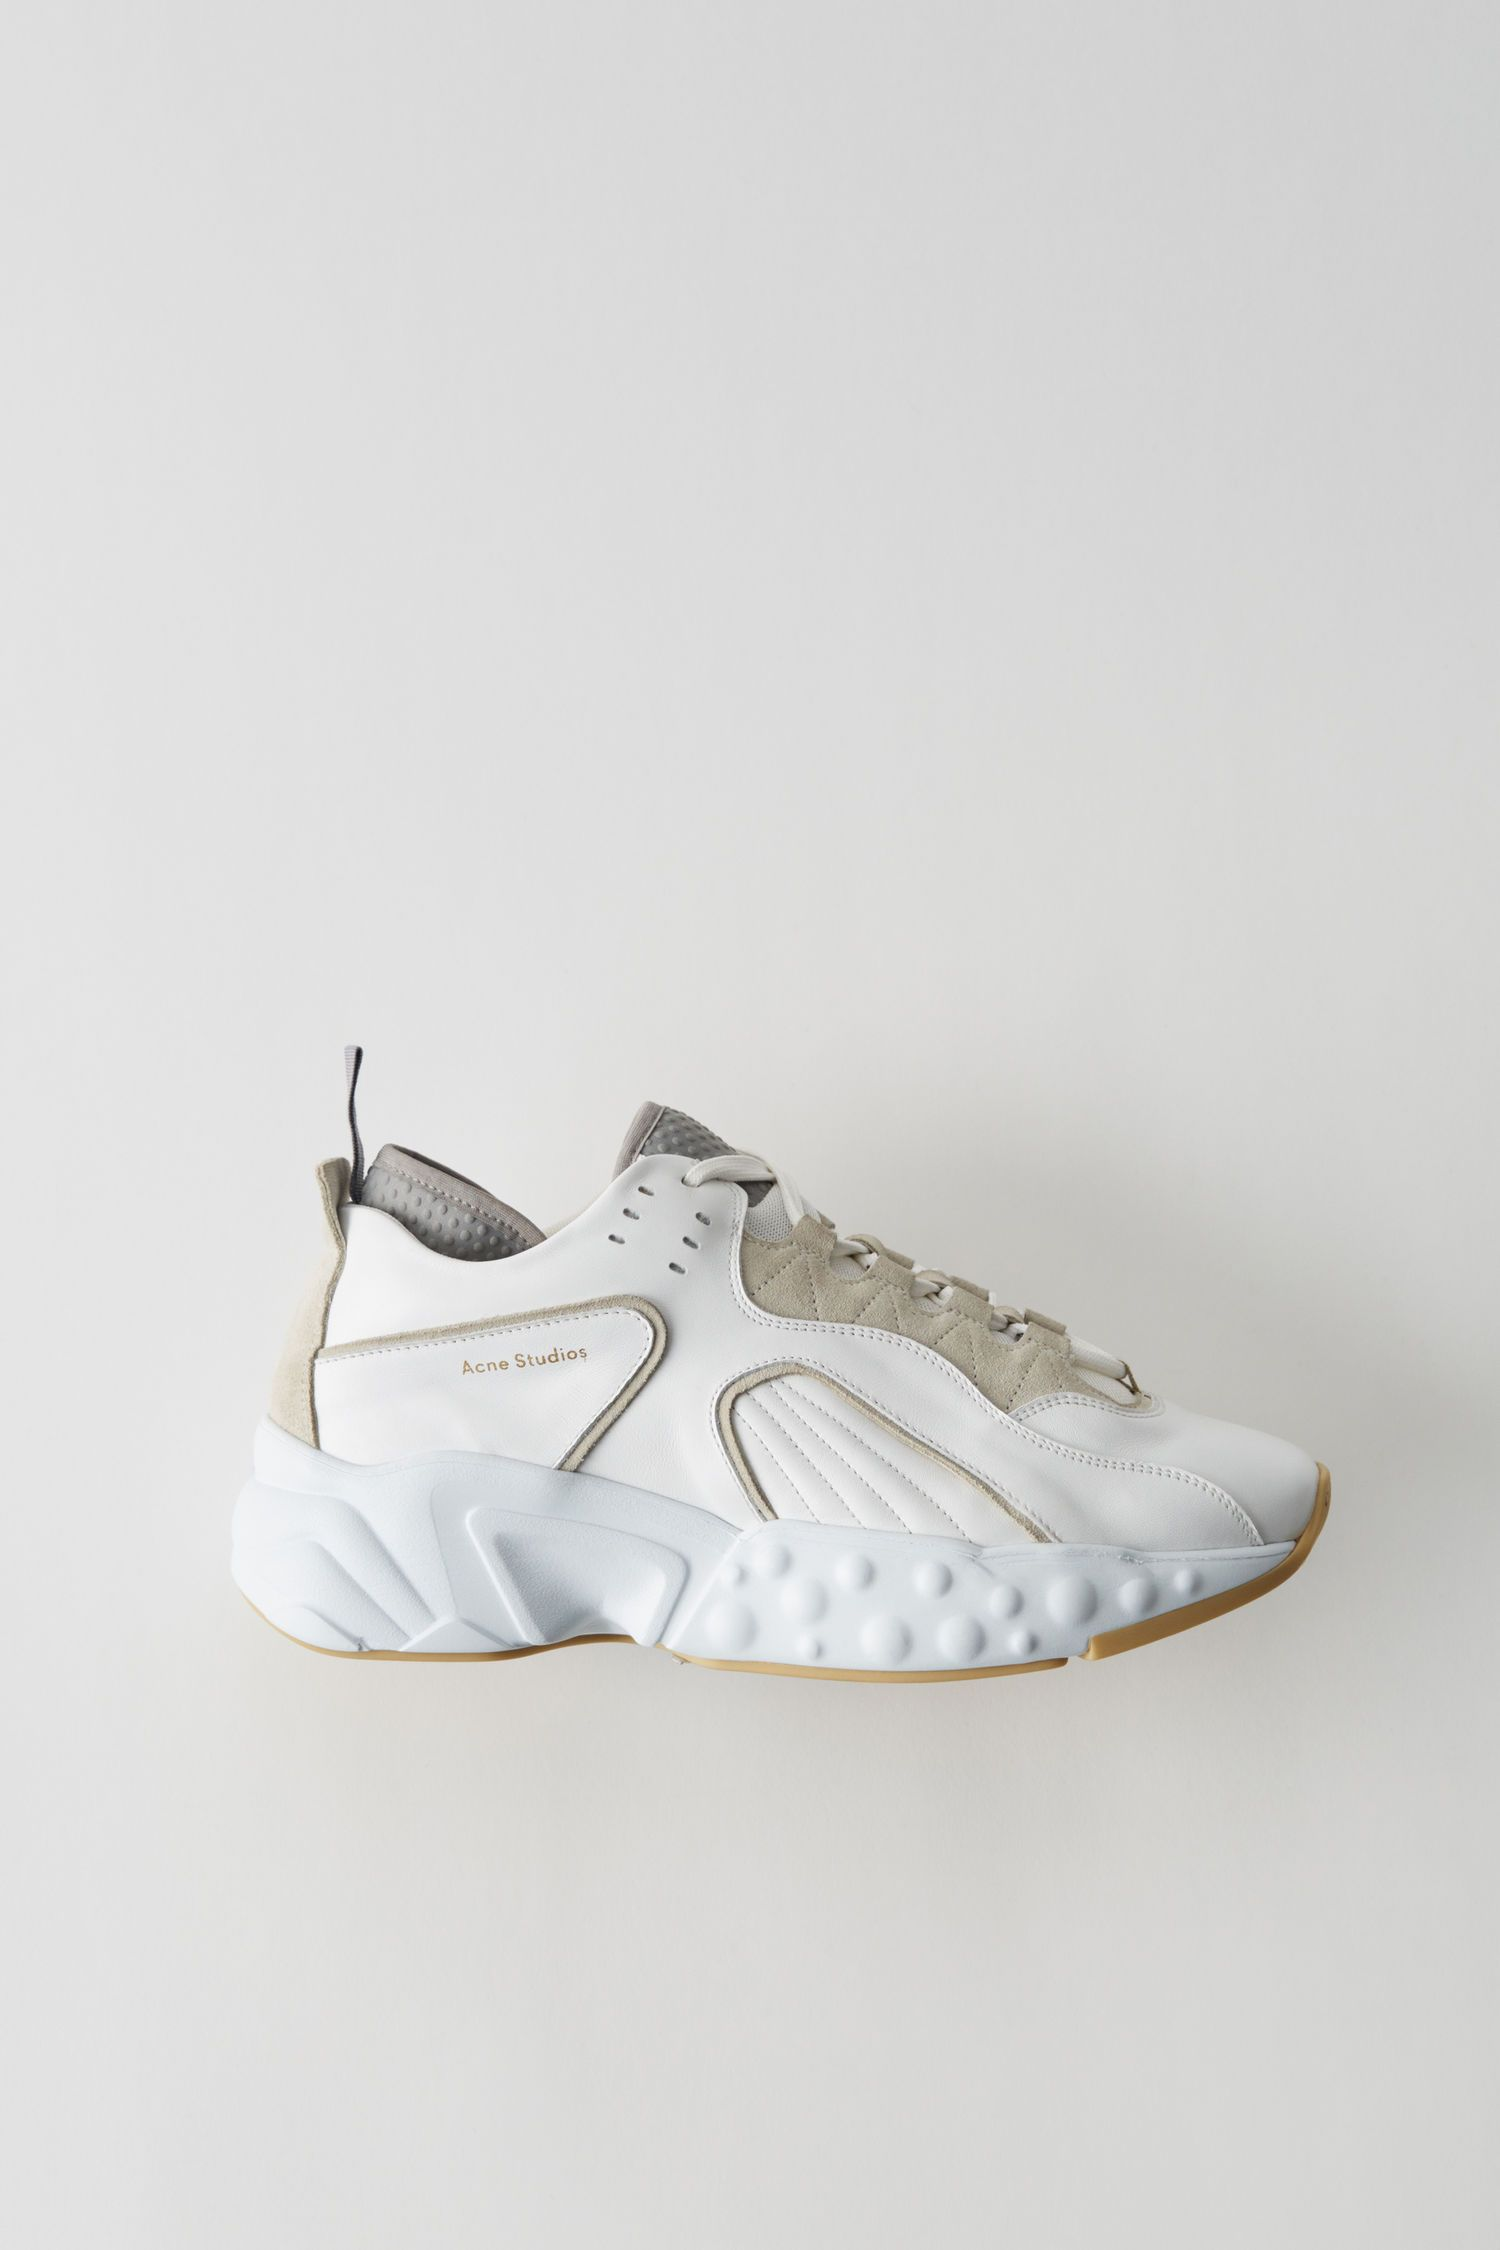 1ab5a2ac8fb ACNE STUDIOS Technical sneakers white.  acnestudios  shoes